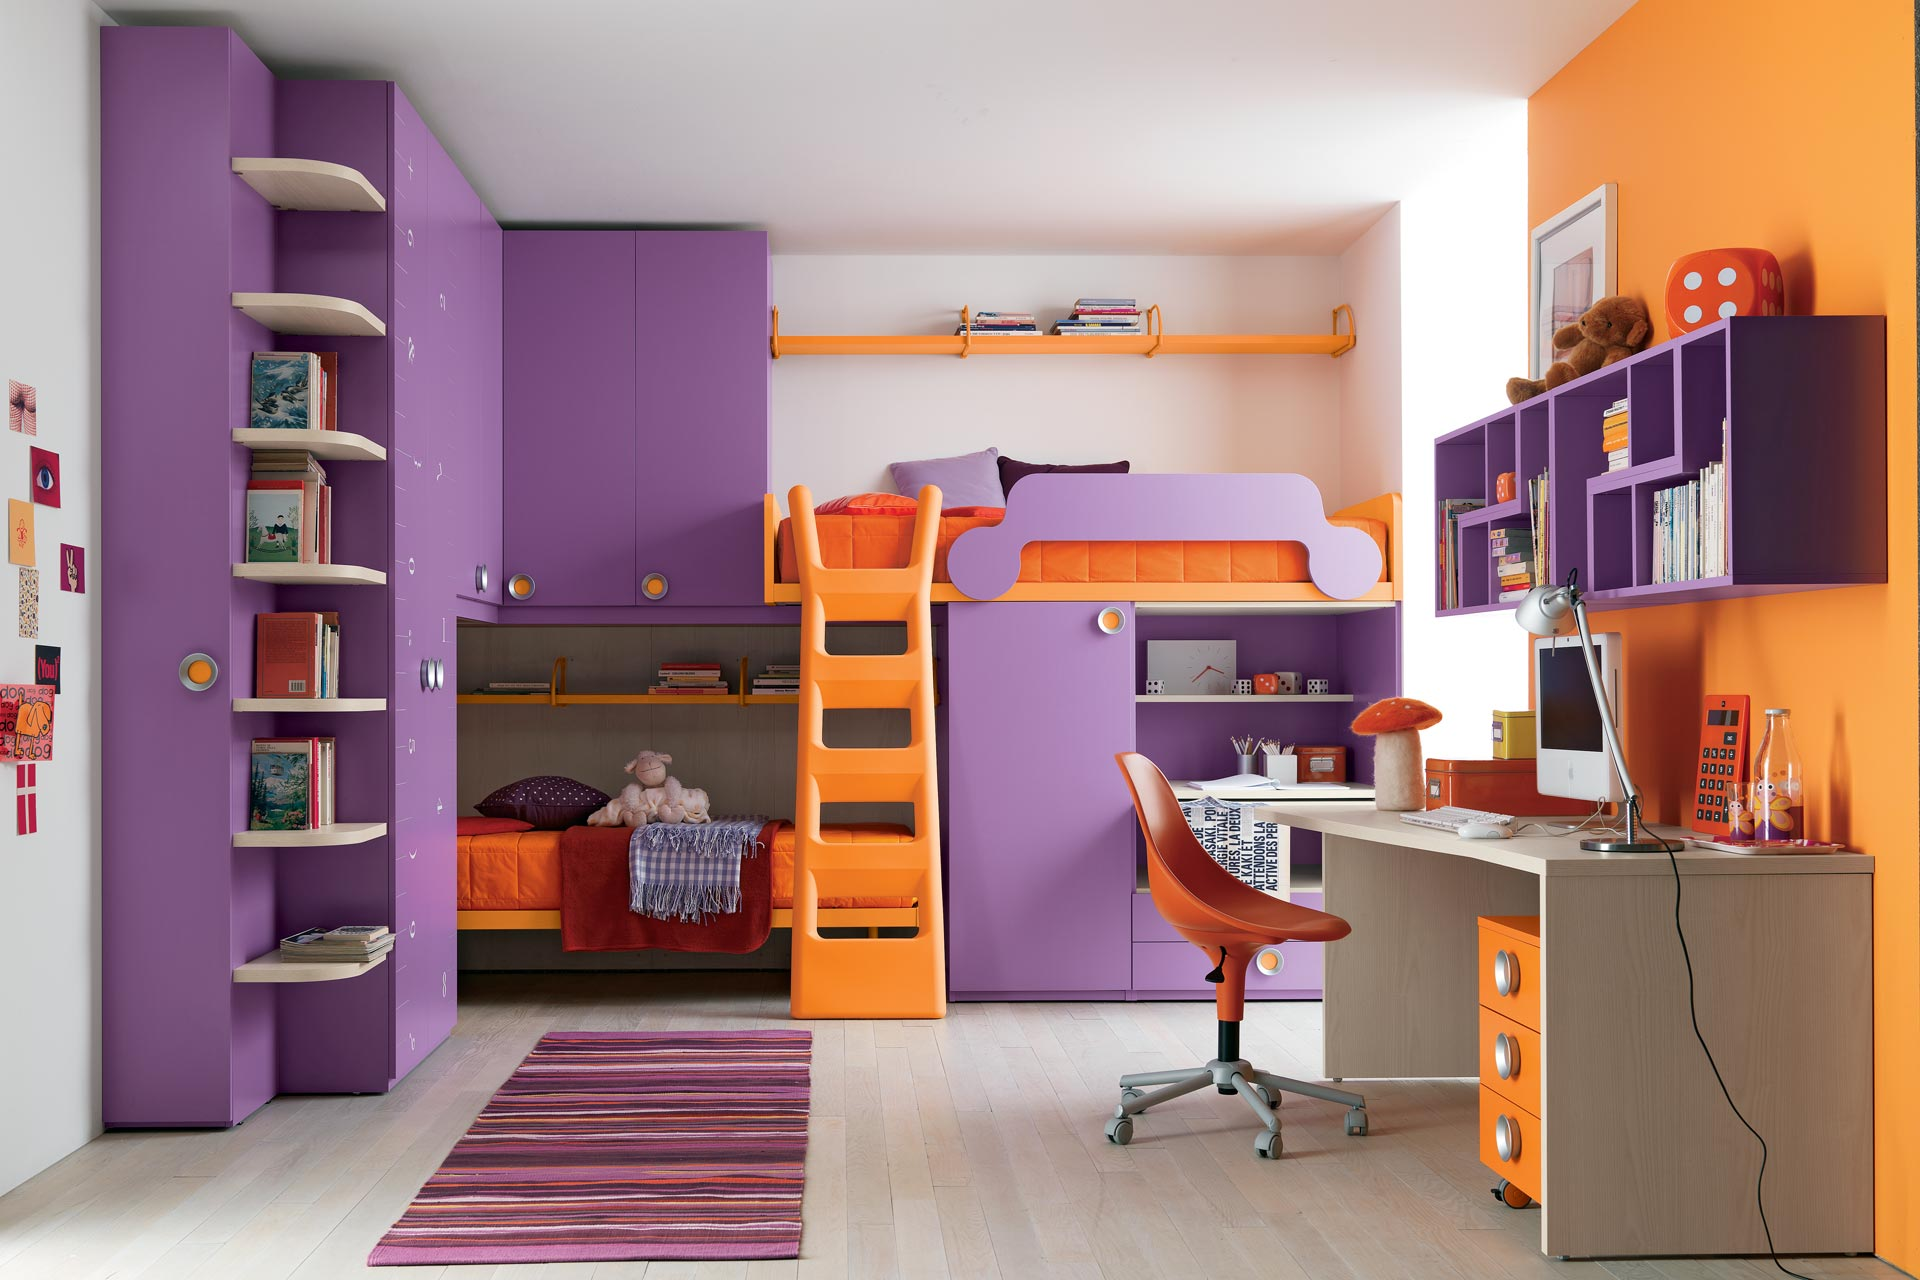 Amazing Kids Bedroom Ideas with Bunk Bed 1920 x 1280 · 232 kB · jpeg